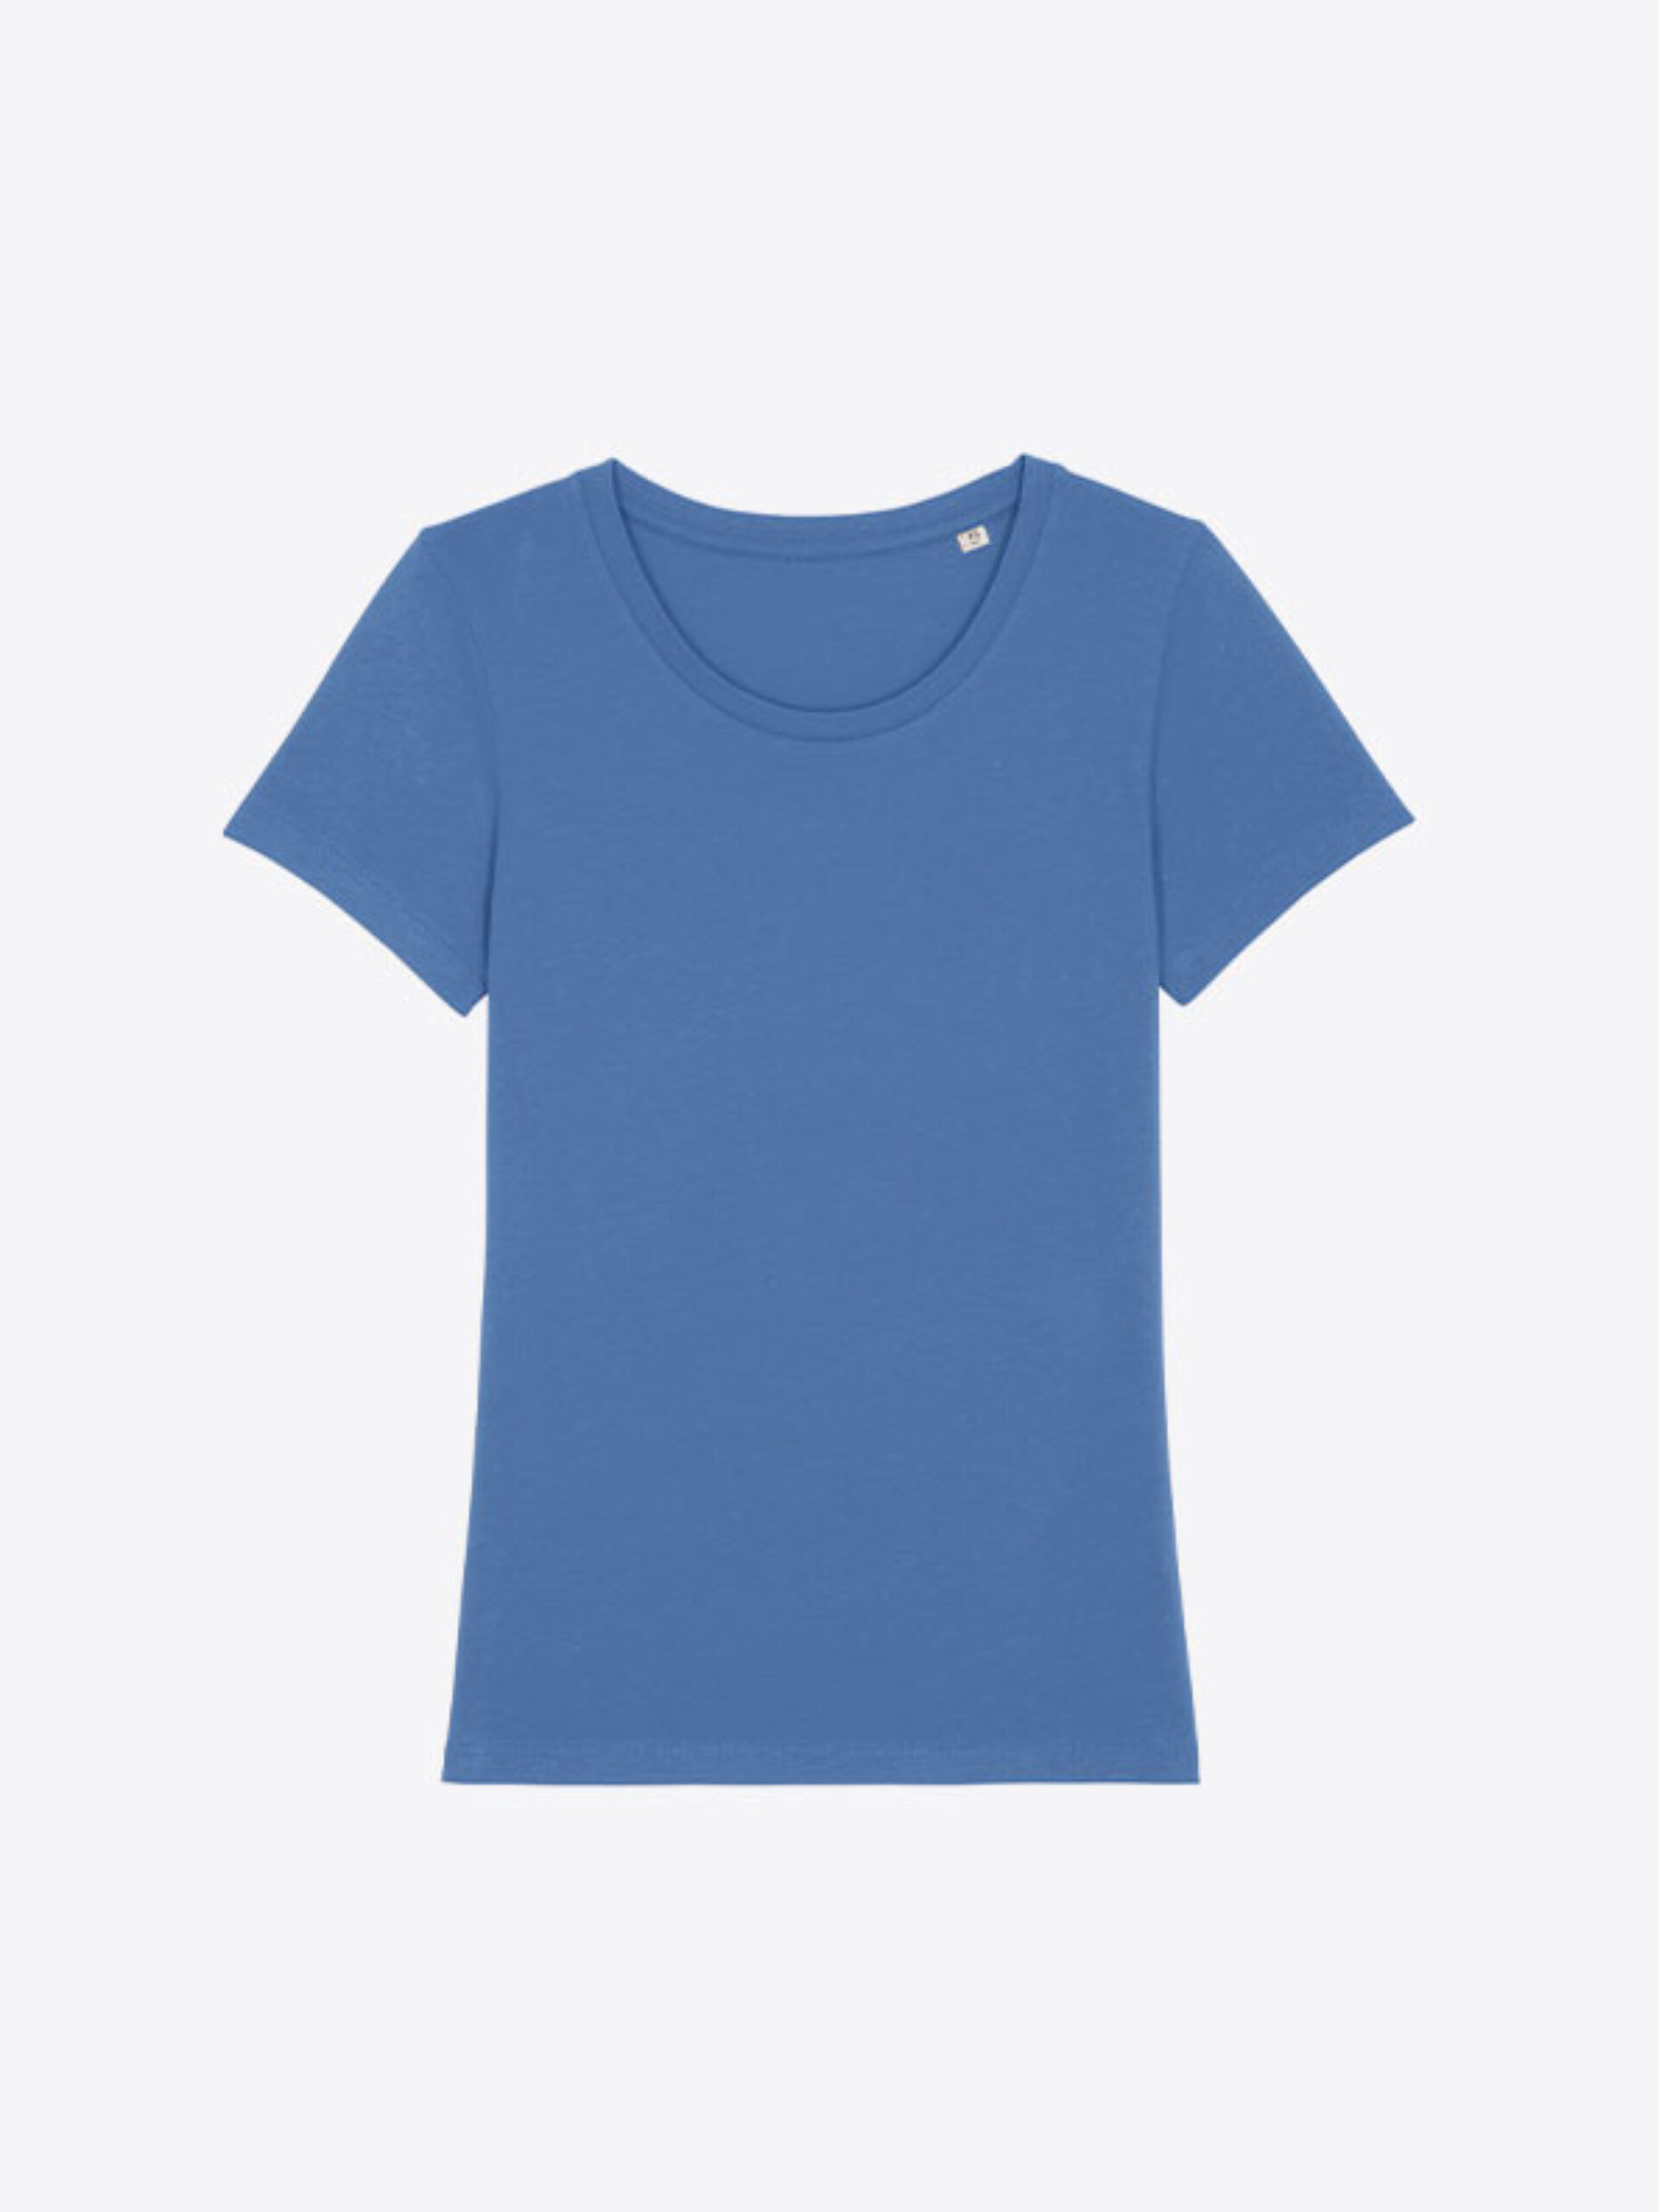 T Shirt Stella And Stella Expresser Bio Baumwolle Mit Logo Siebdruck Bright Blue